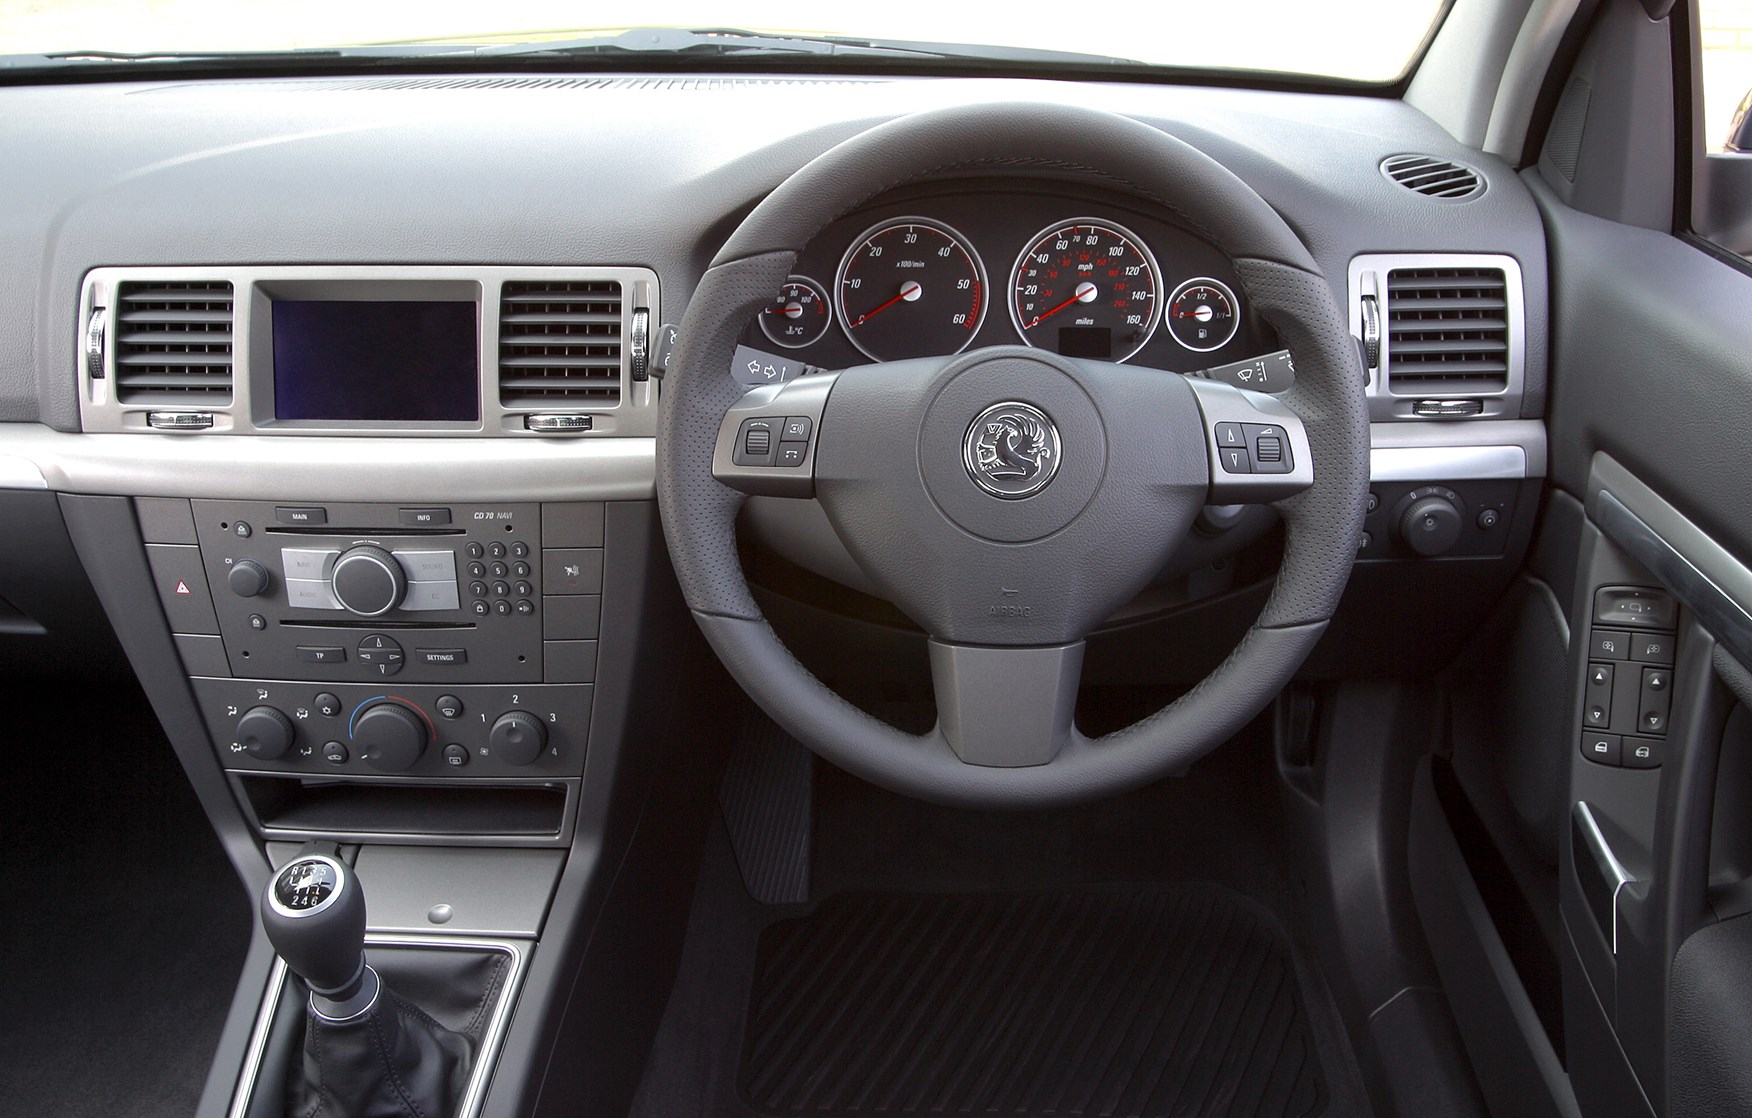 Used Vauxhall Vectra Hatchback 2005 2008 Review Parkers